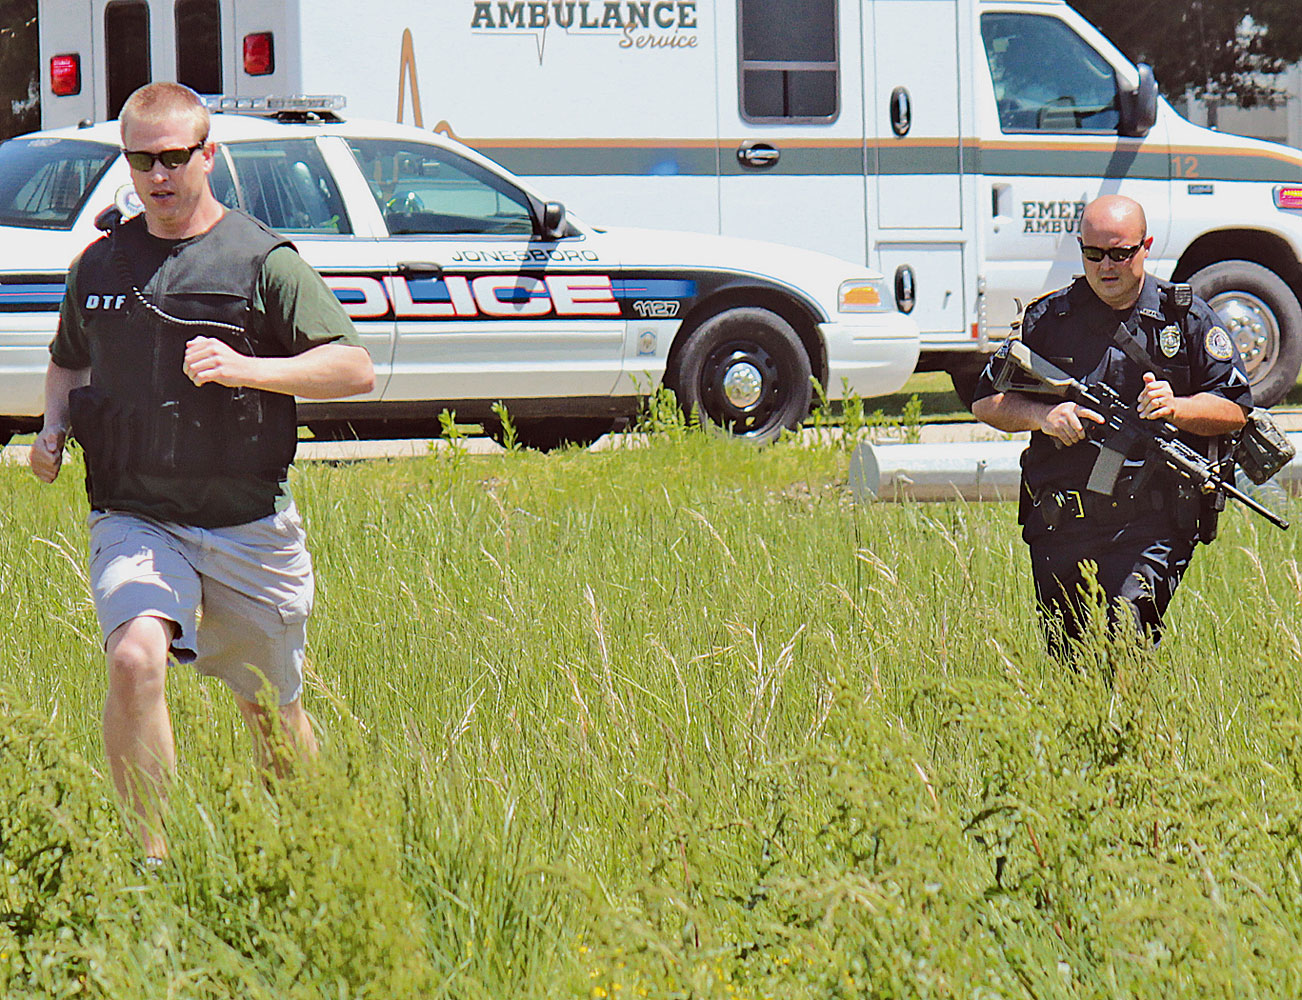 Drug Task Force Detective Josh Talbott, left, and Jonesboro Police Department Patrolman First Class Duane Busby run across a field adjacent to Moore Road while responding to a May 3, 2014 shooting in Jonesboro, Ark.